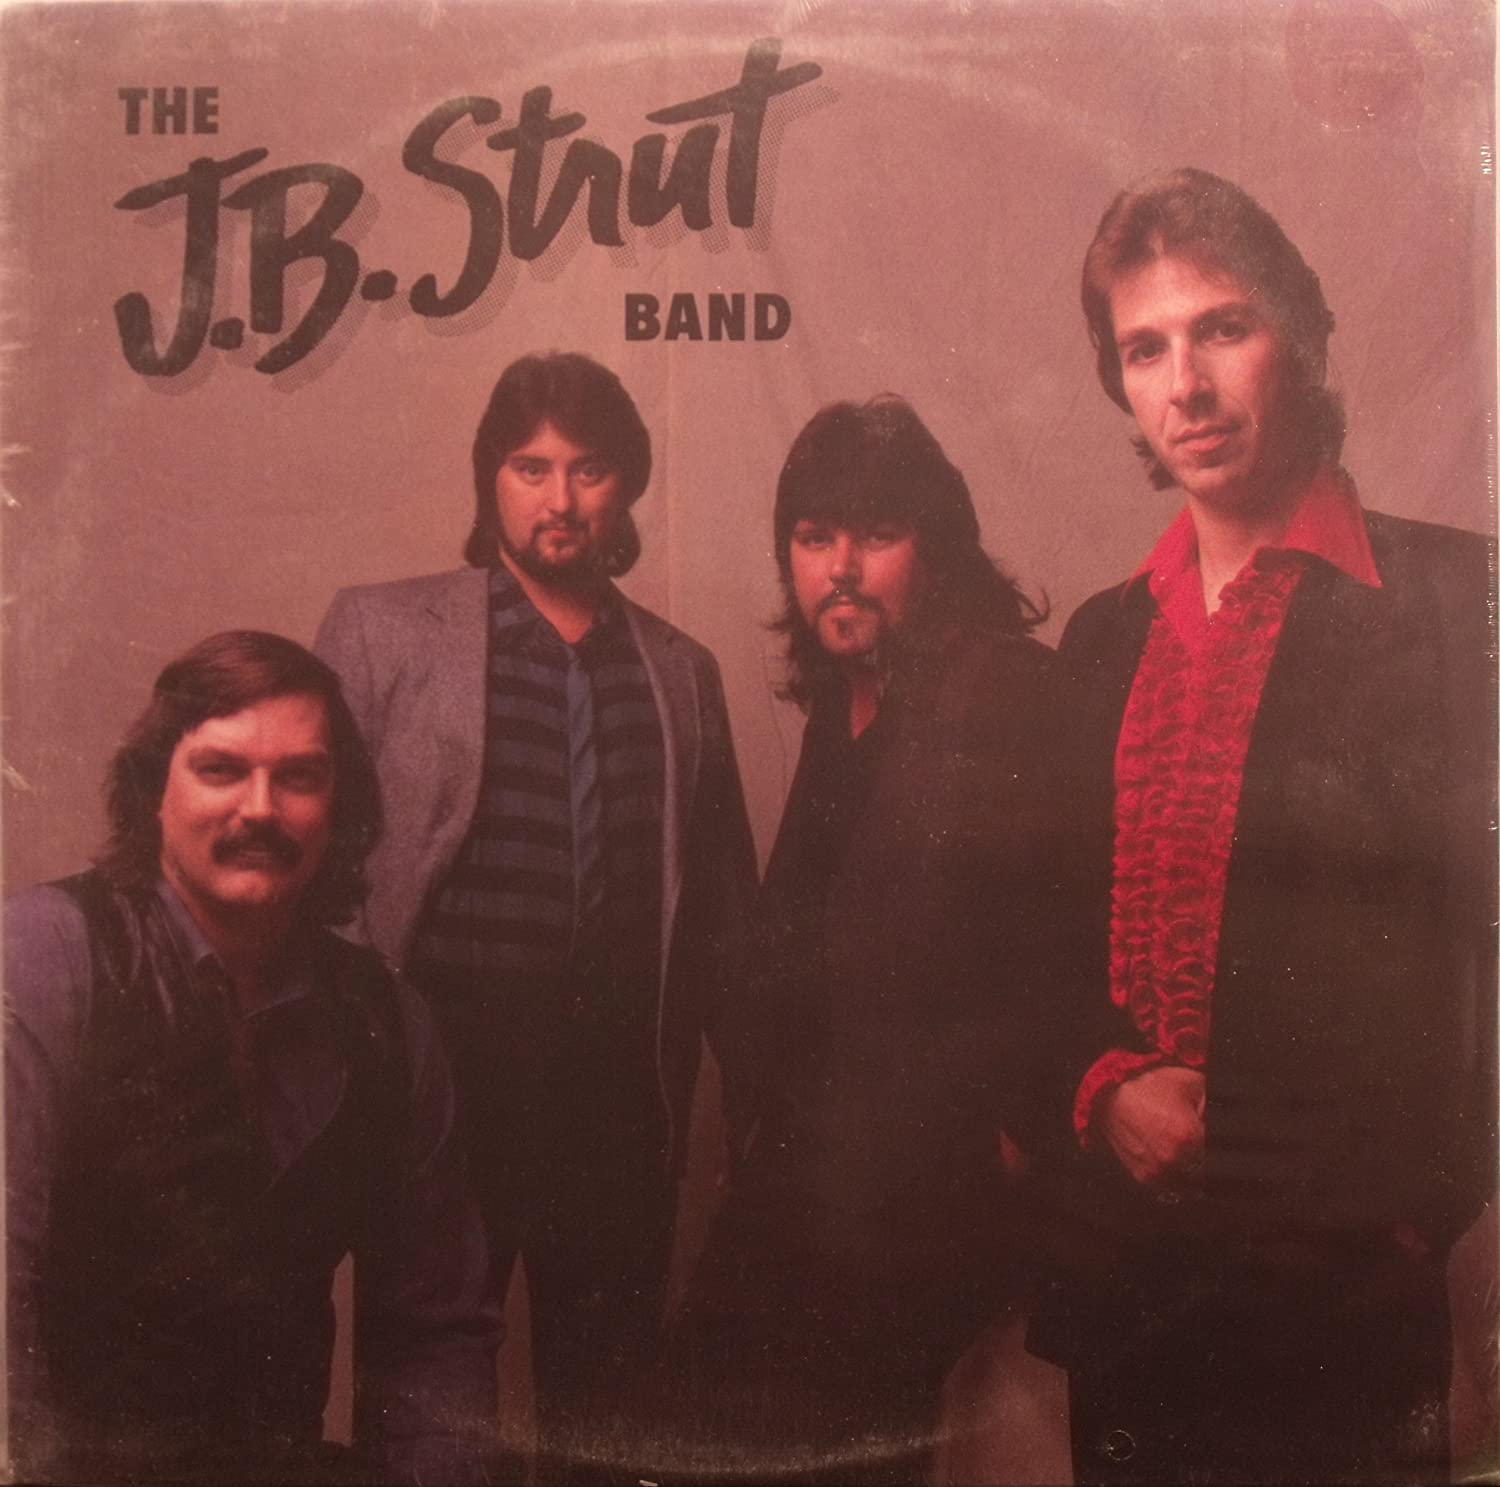 The Jb Strut Band The Jb Strut Band Amazon Music